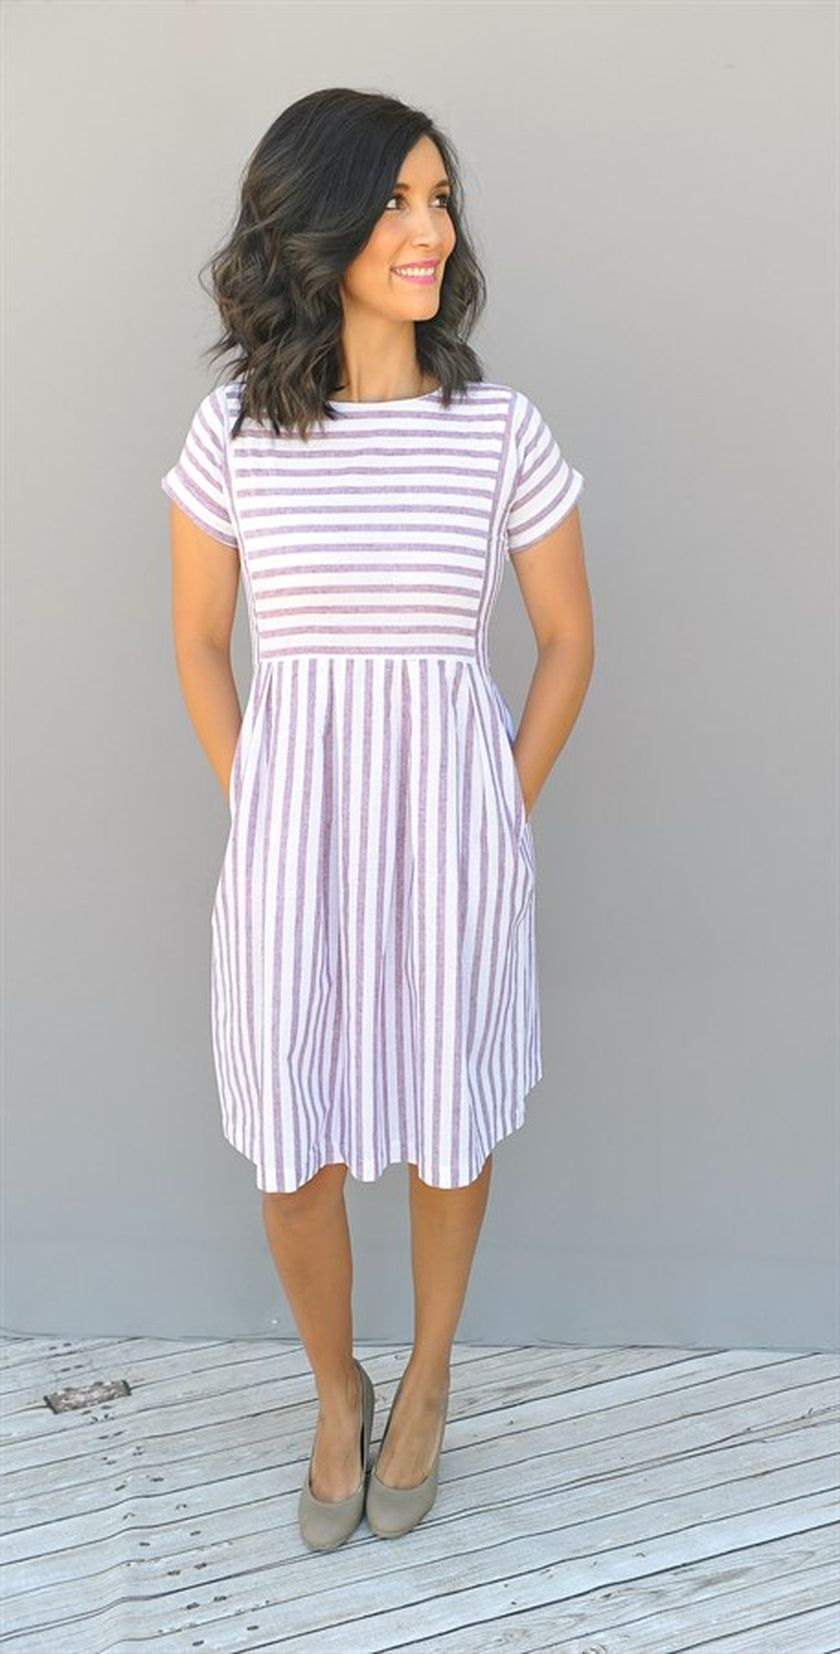 Casual black white striped midi dress outfit 23 - Fashion Best